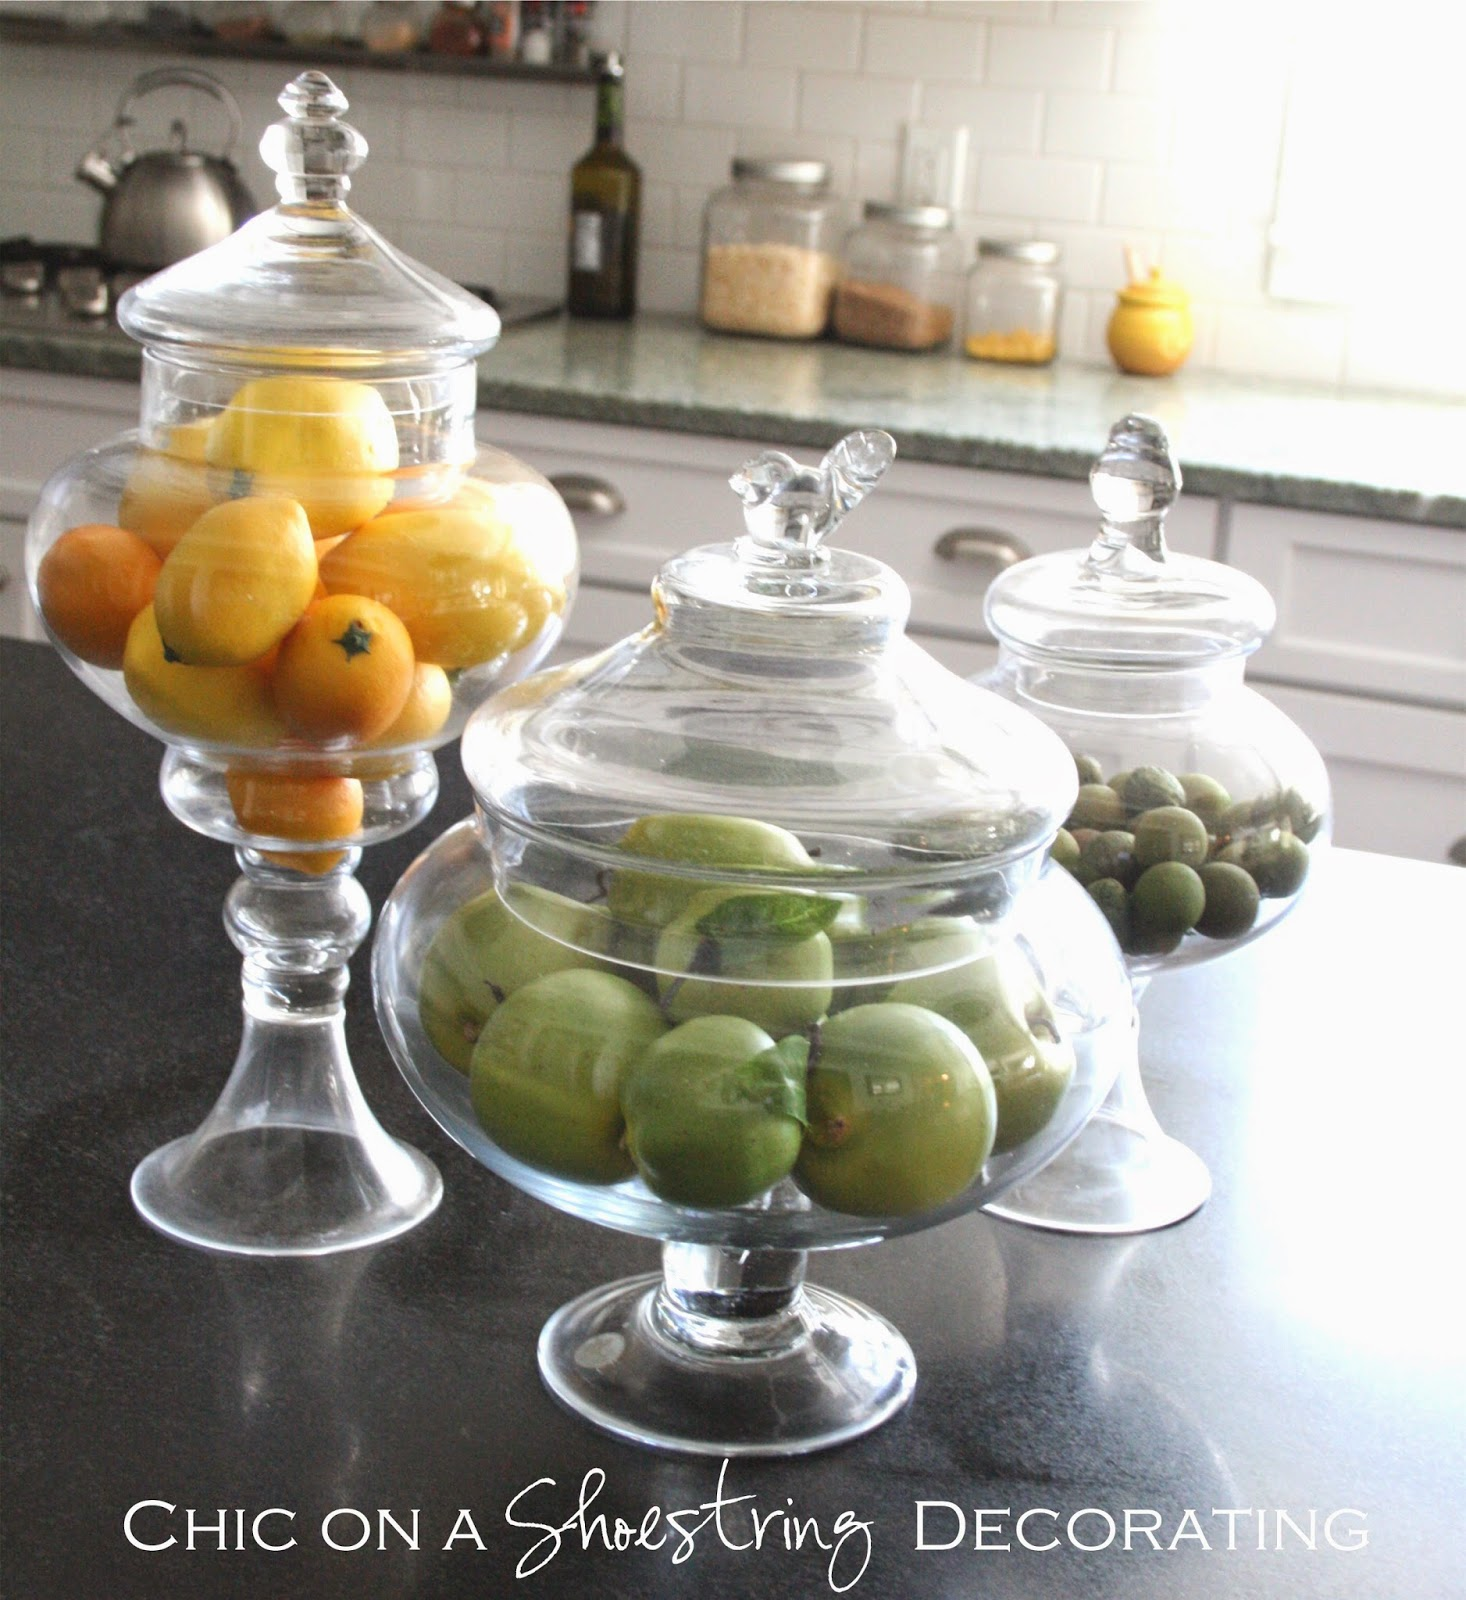 Kitchen Decor Jars: Chic On A Shoestring Decorating: Client Kitchen Remodel Reveal